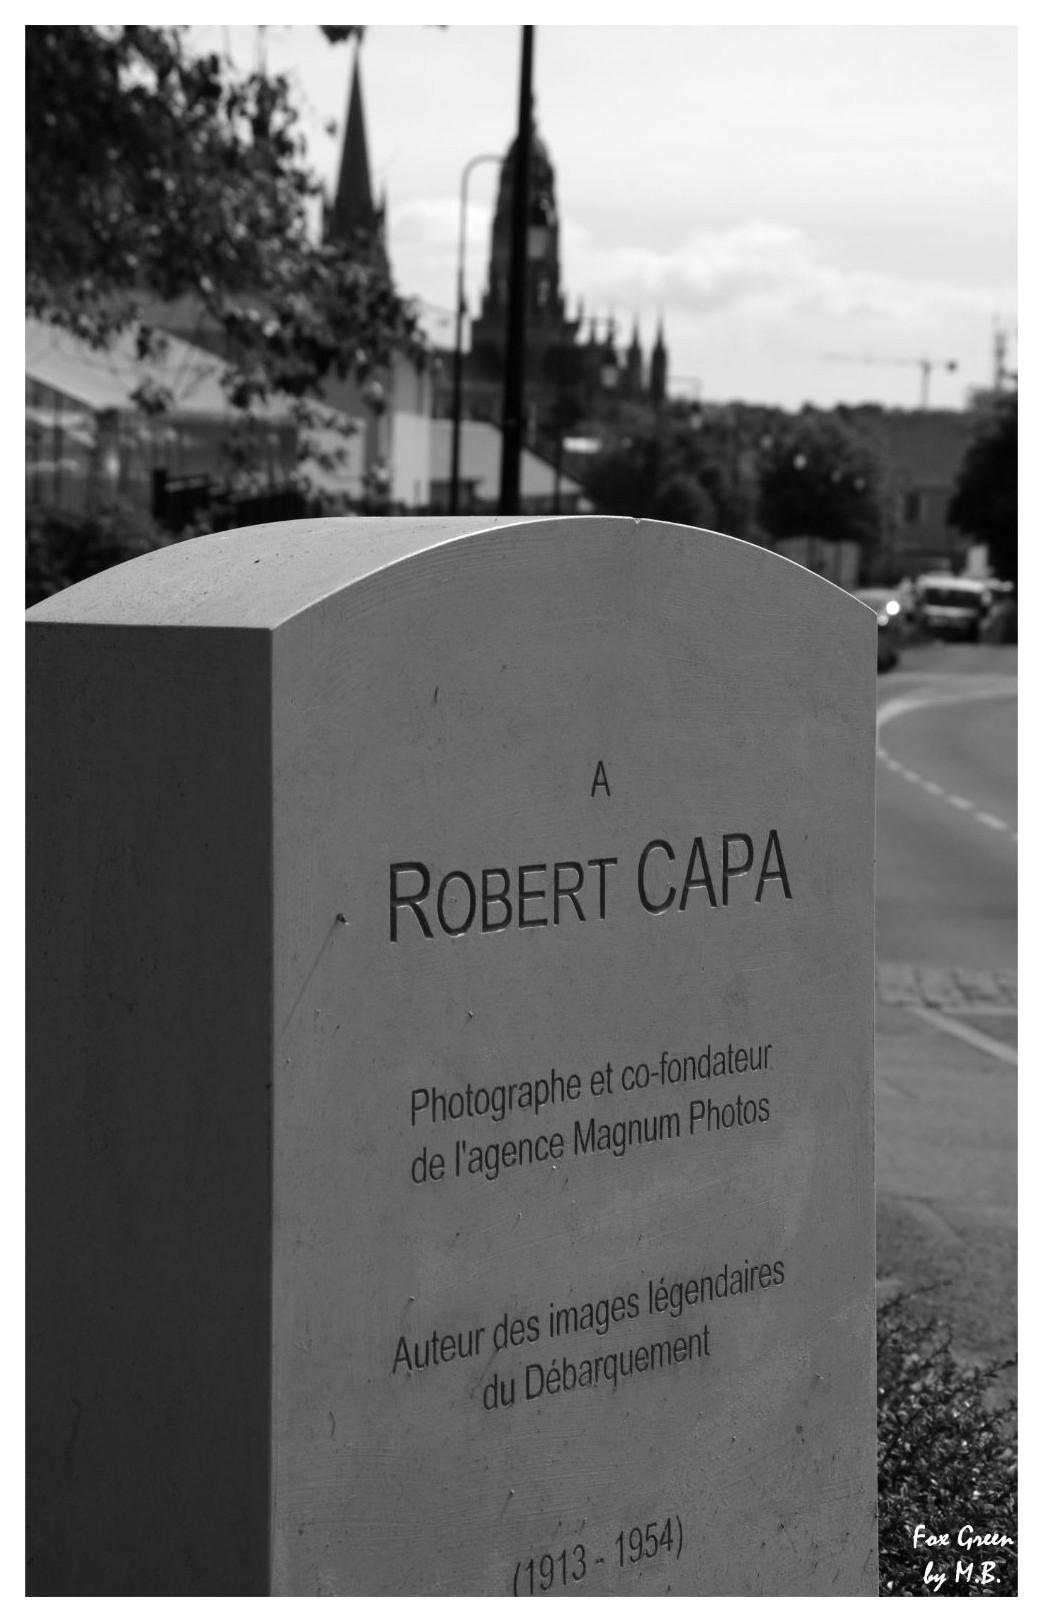 website robert capa 200kb